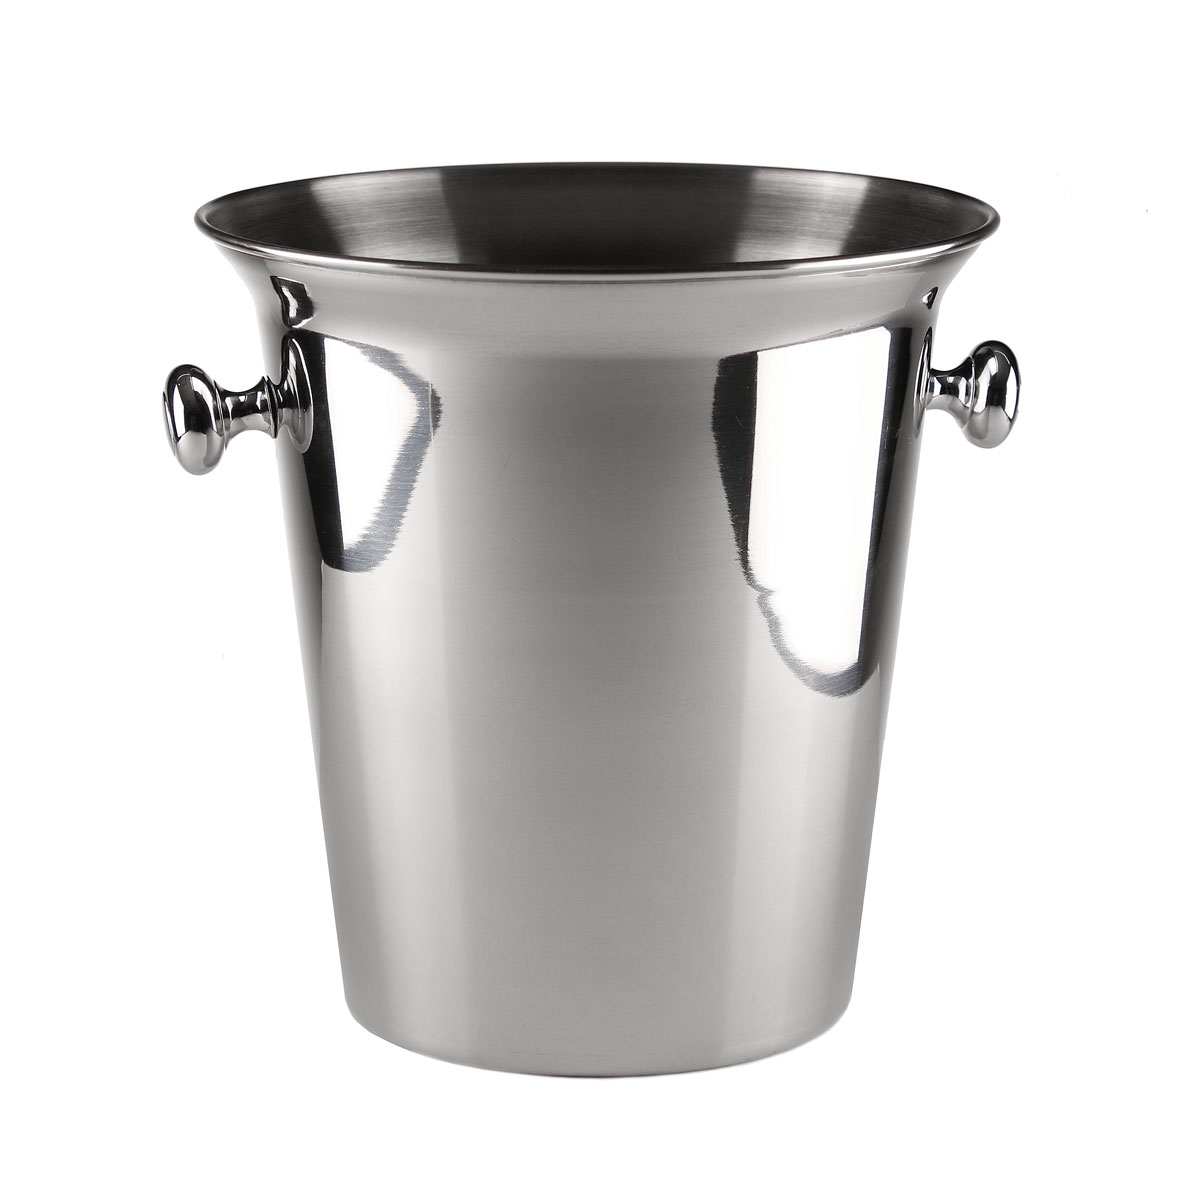 Schott Zwiesel Crafthouse Stainless Steel Champagne Ice Bucket